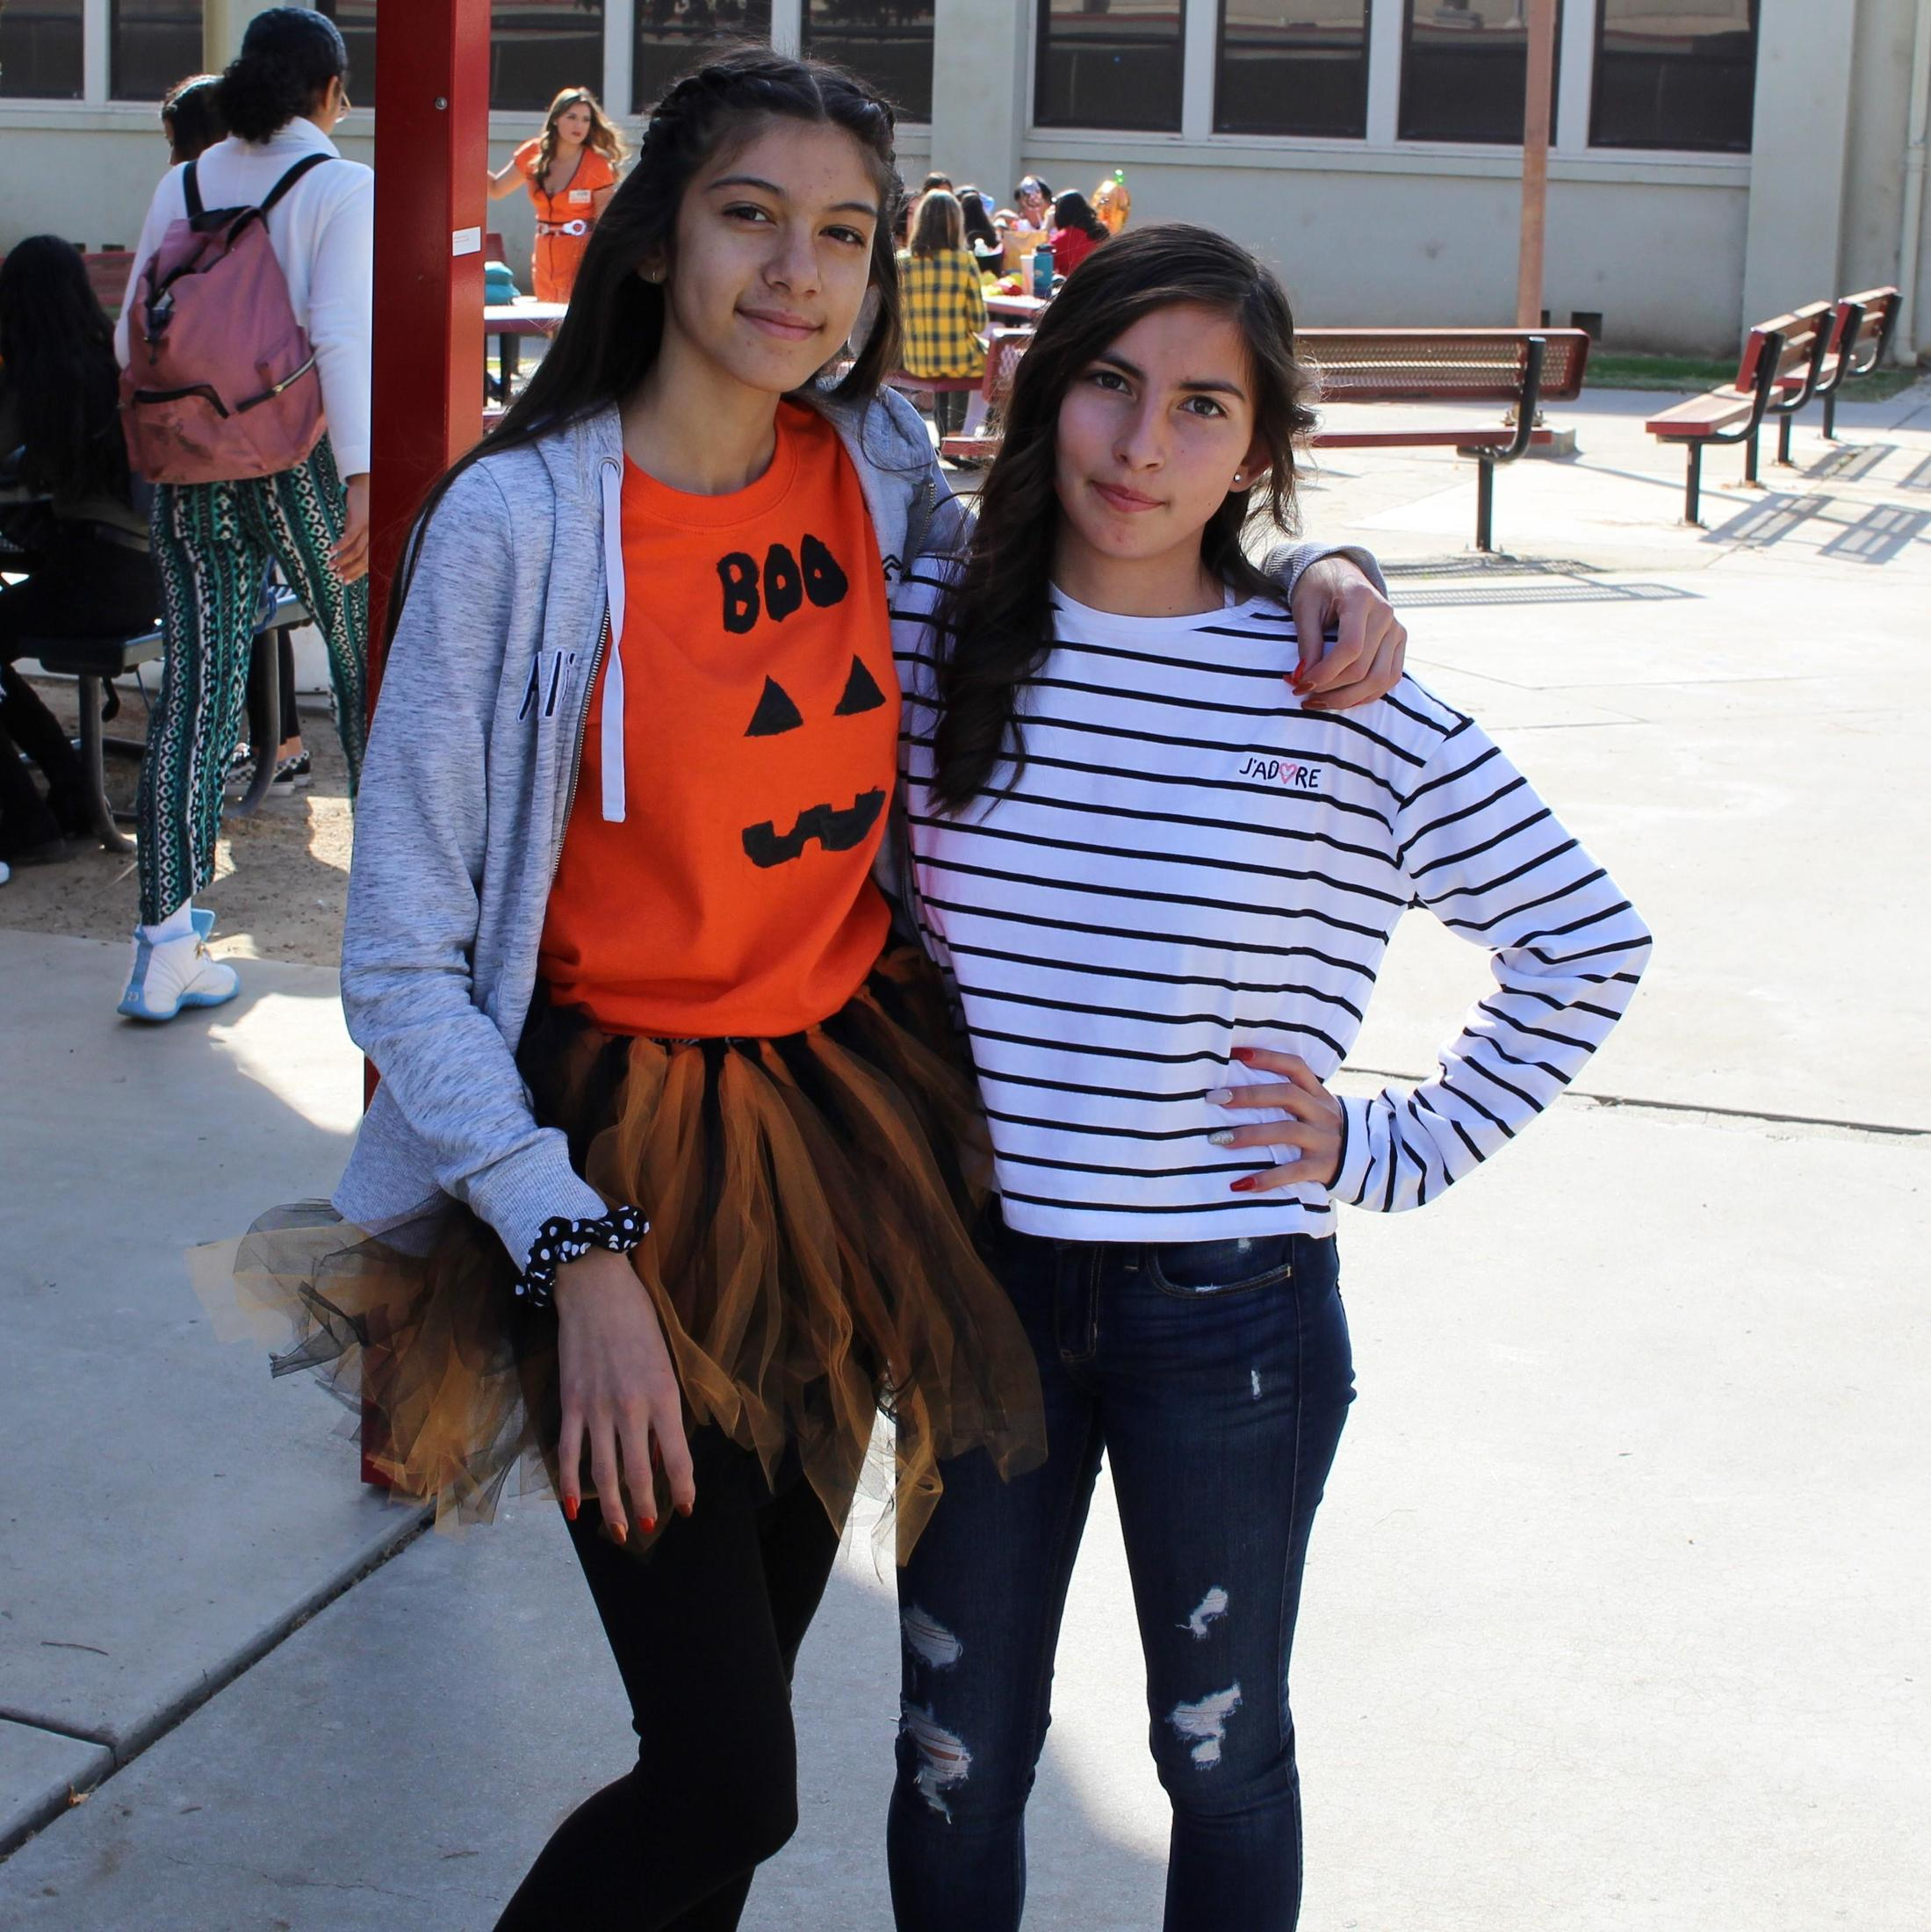 Carmen Martinez dressed as a pumpkin and Kimberly Palomino dressed as an inmate